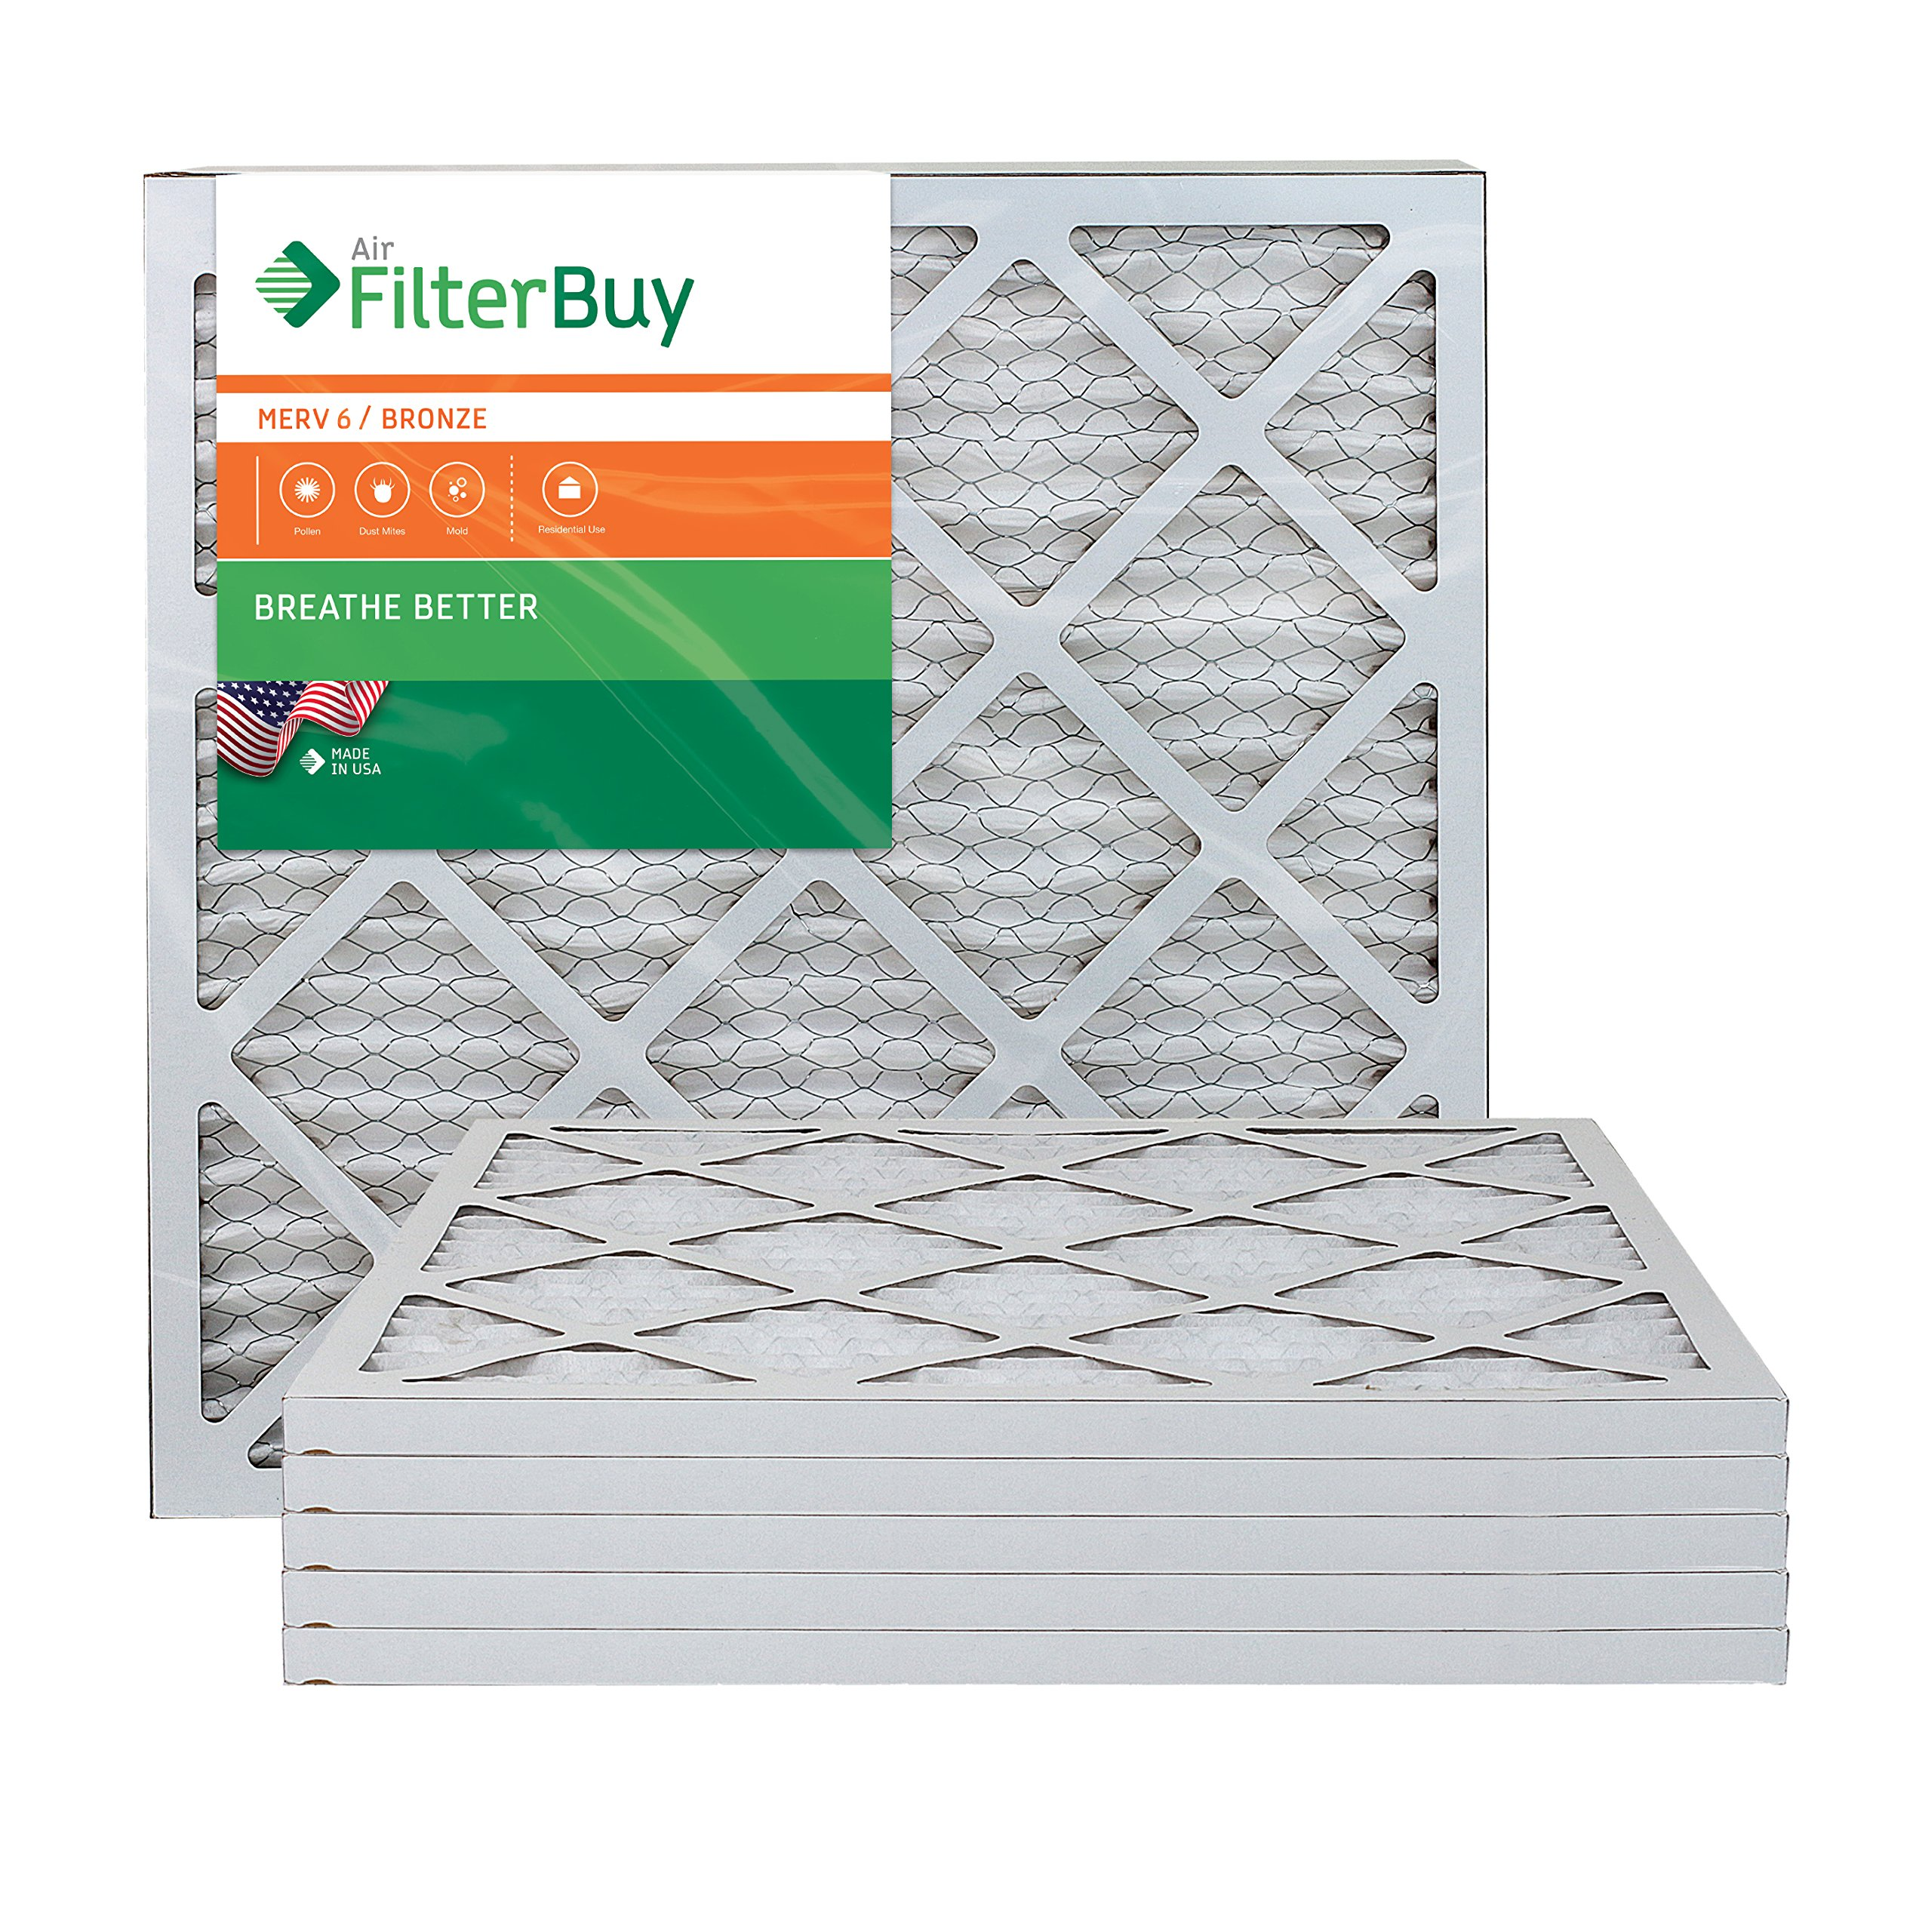 AFB Bronze MERV 6 20x20x1 Pleated AC Furnace Air Filter. Pack of 6 Filters. 100% produced in the USA.